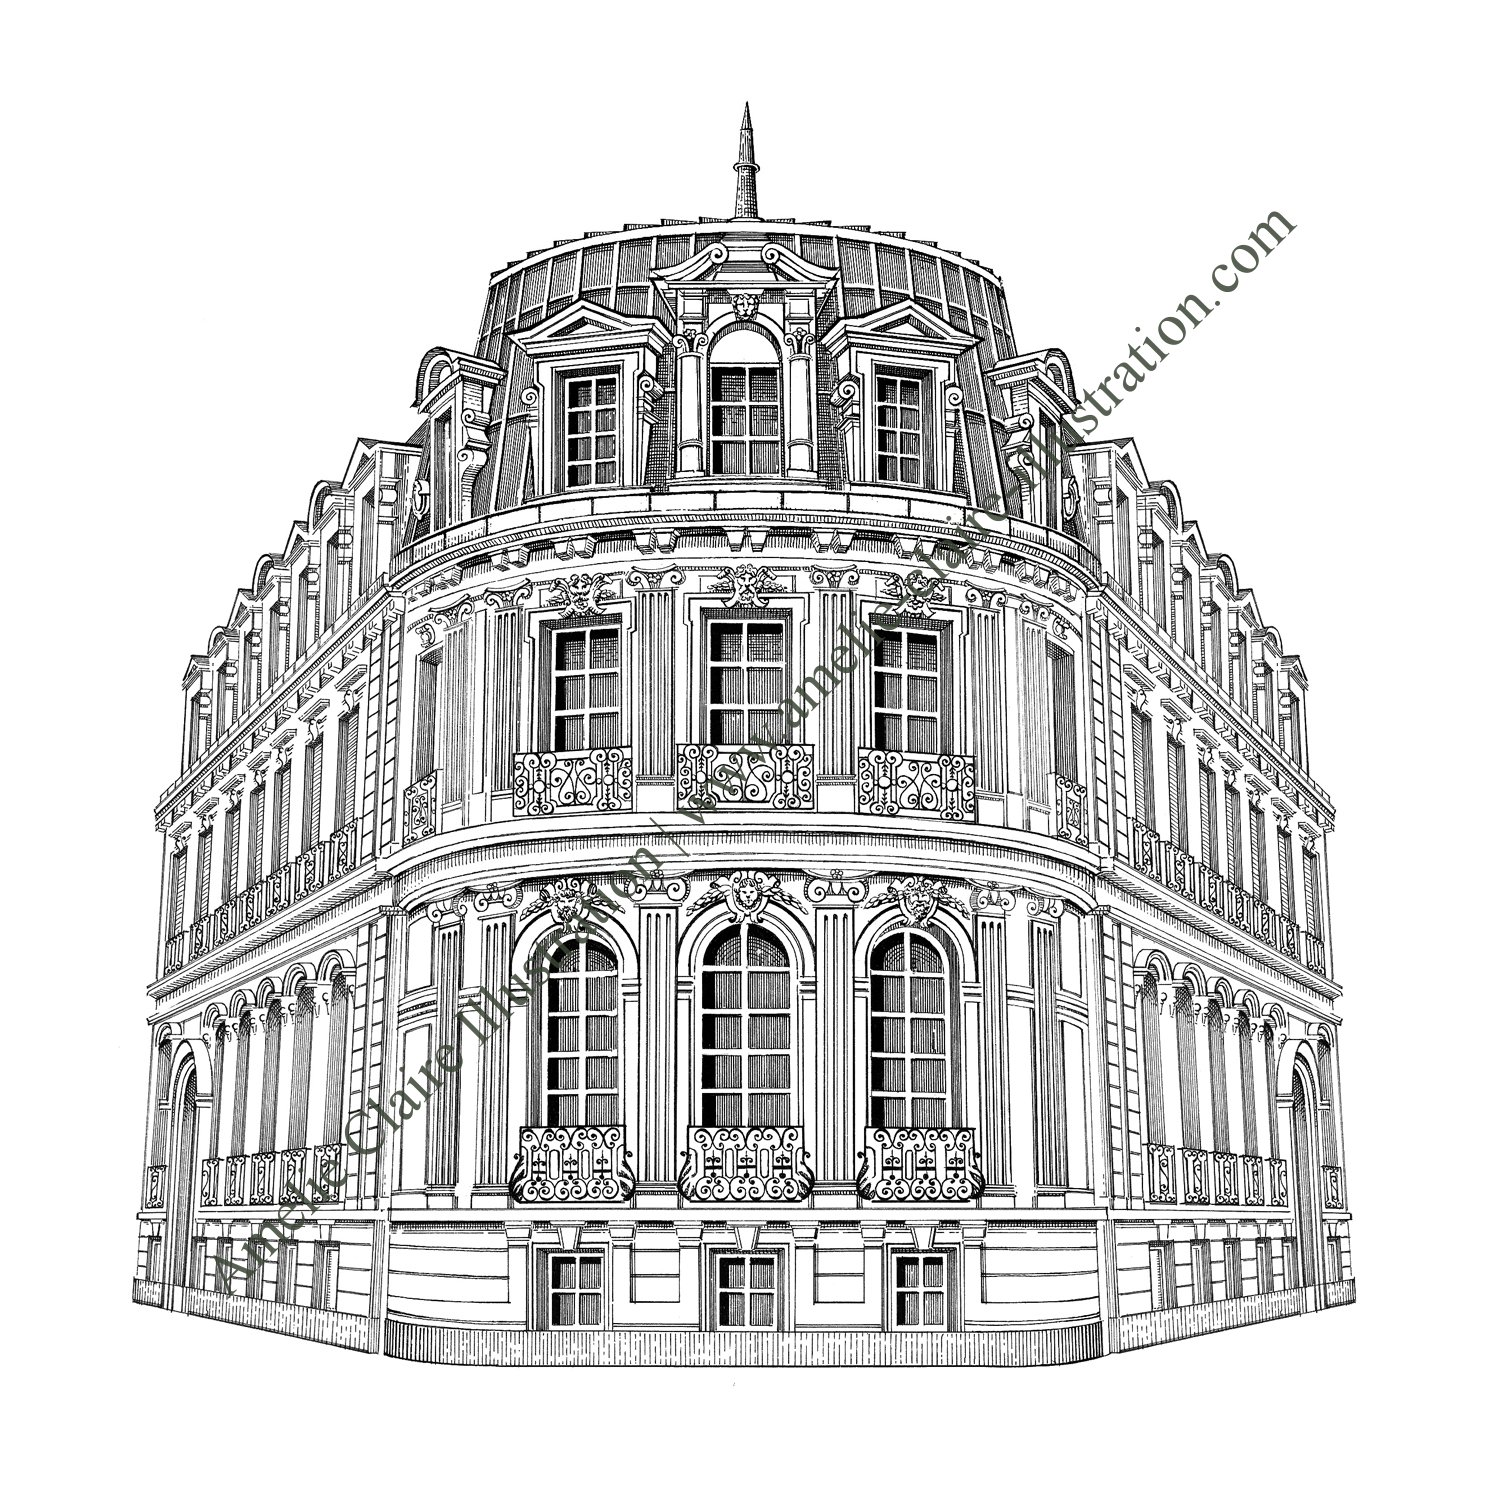 Favori Immeuble Haussmannien 2 - Amelie Claire illustration traditionnelle VV92